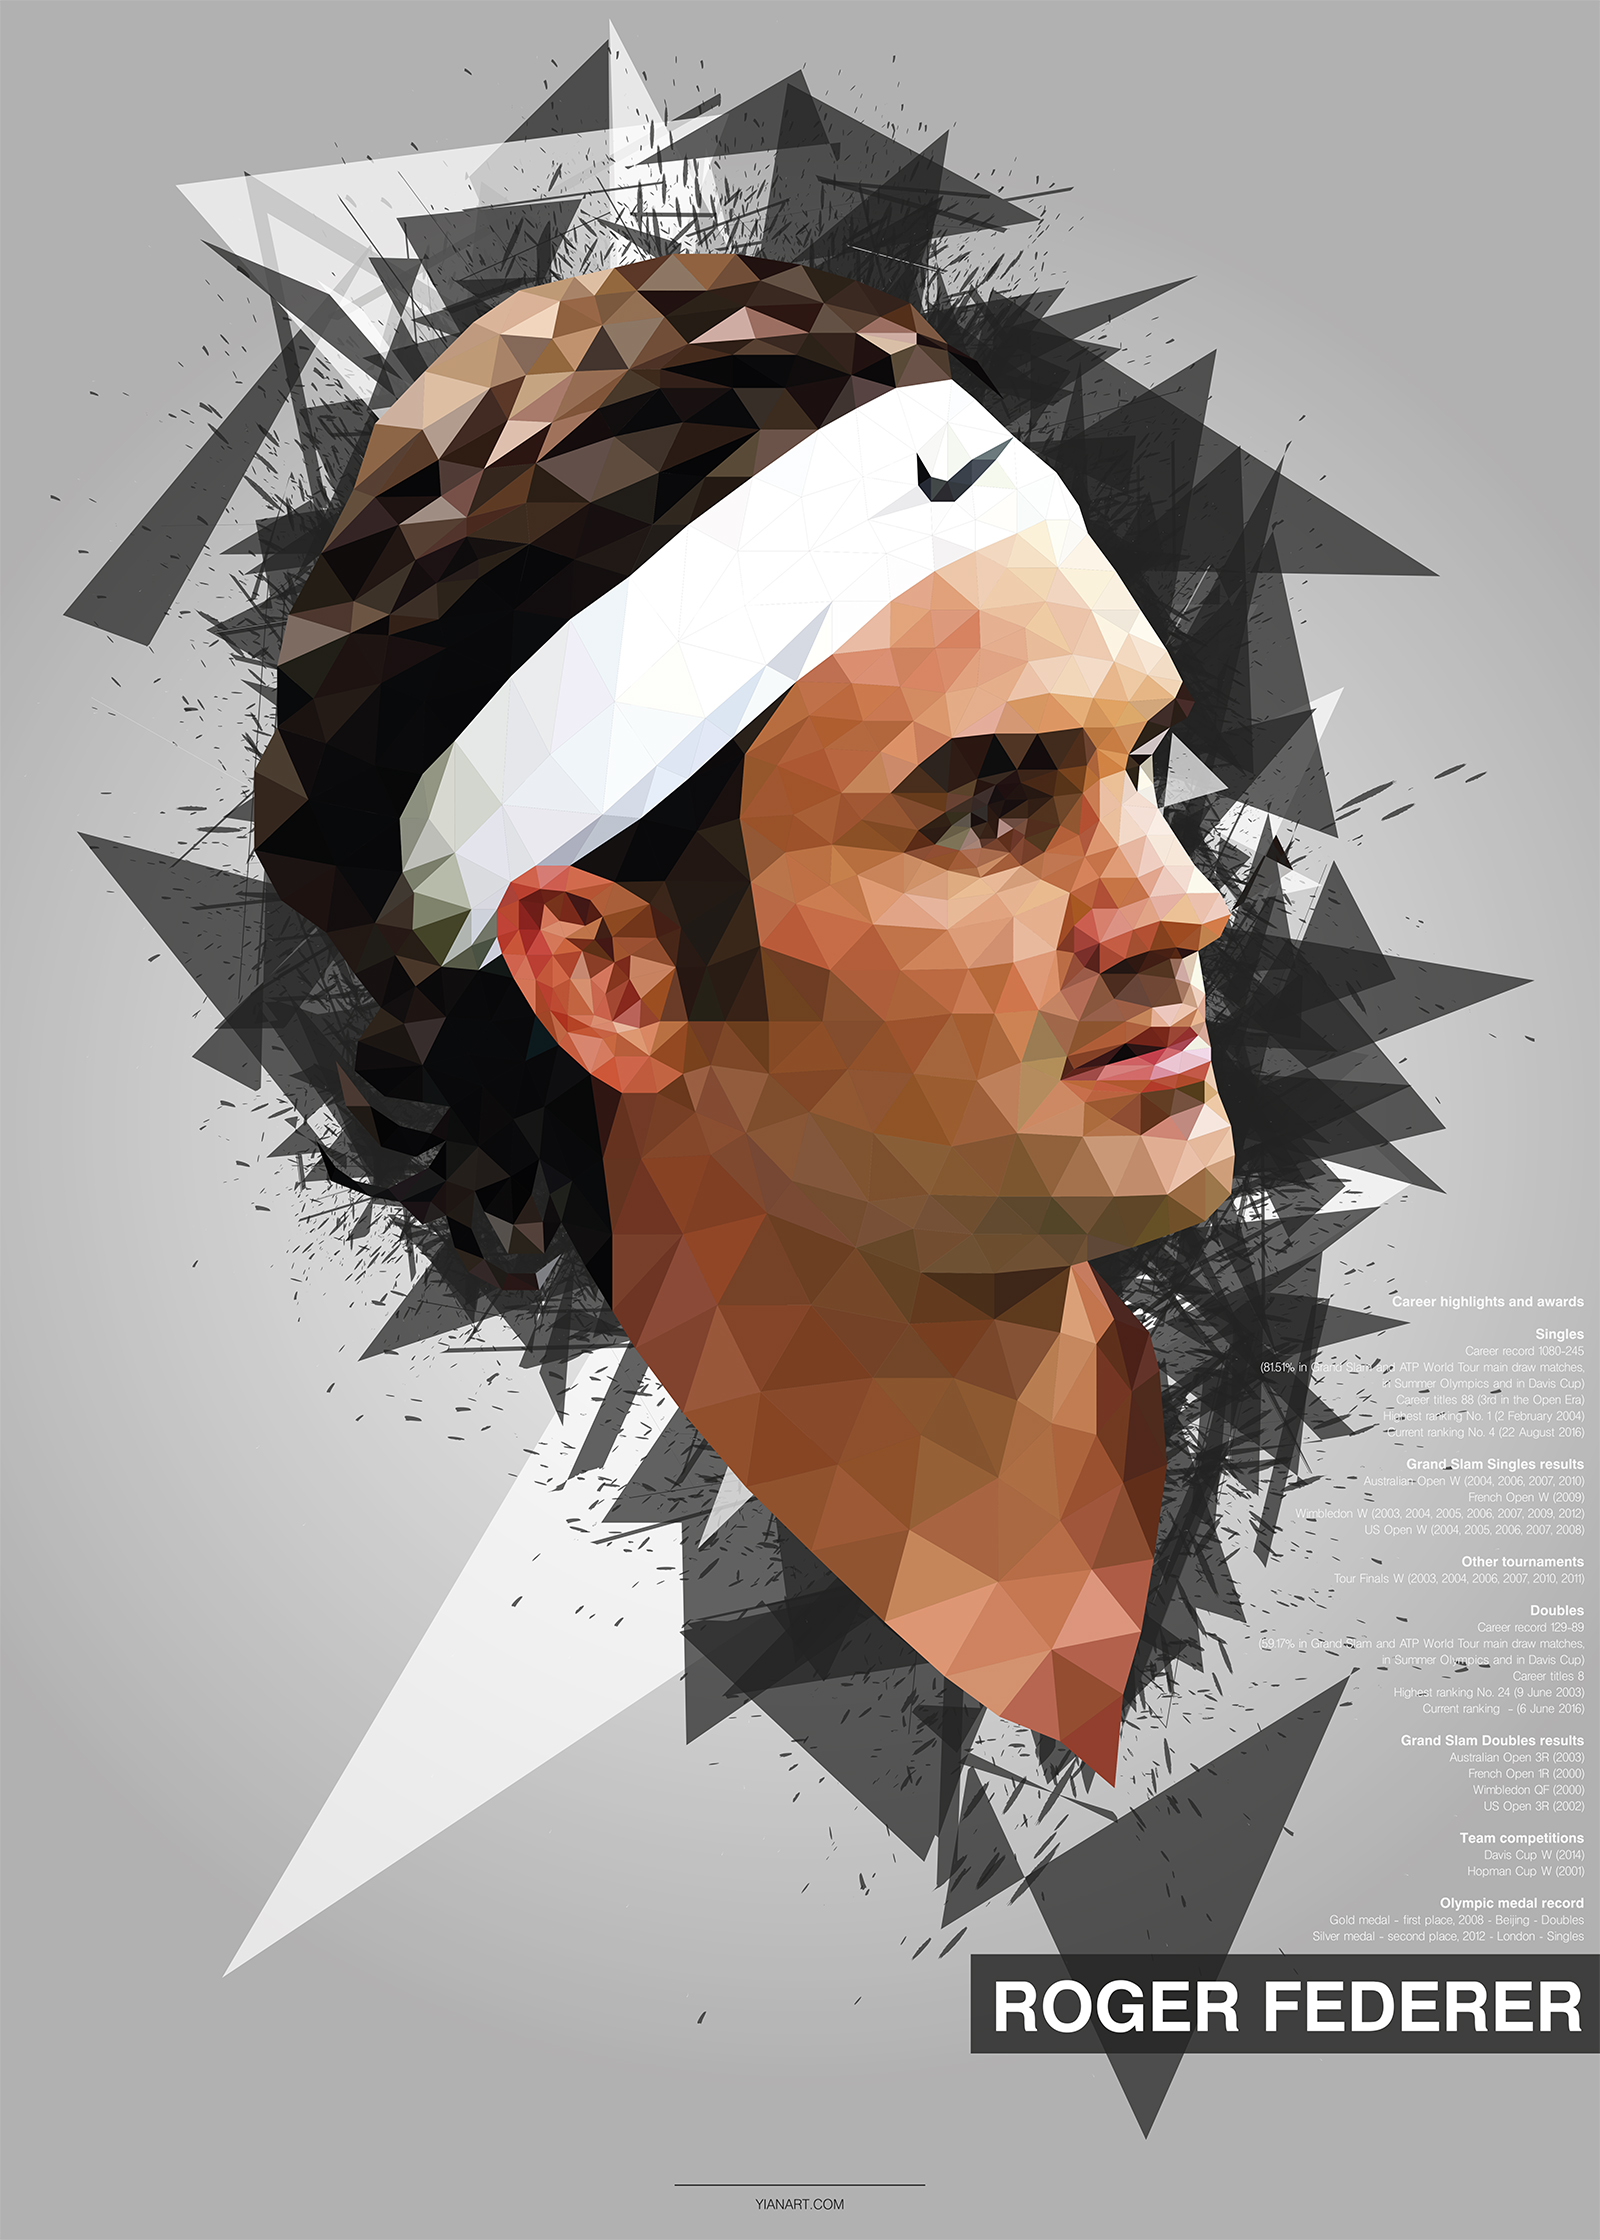 Roger Federer - Top Athletes Low Poly Design_yianart.com